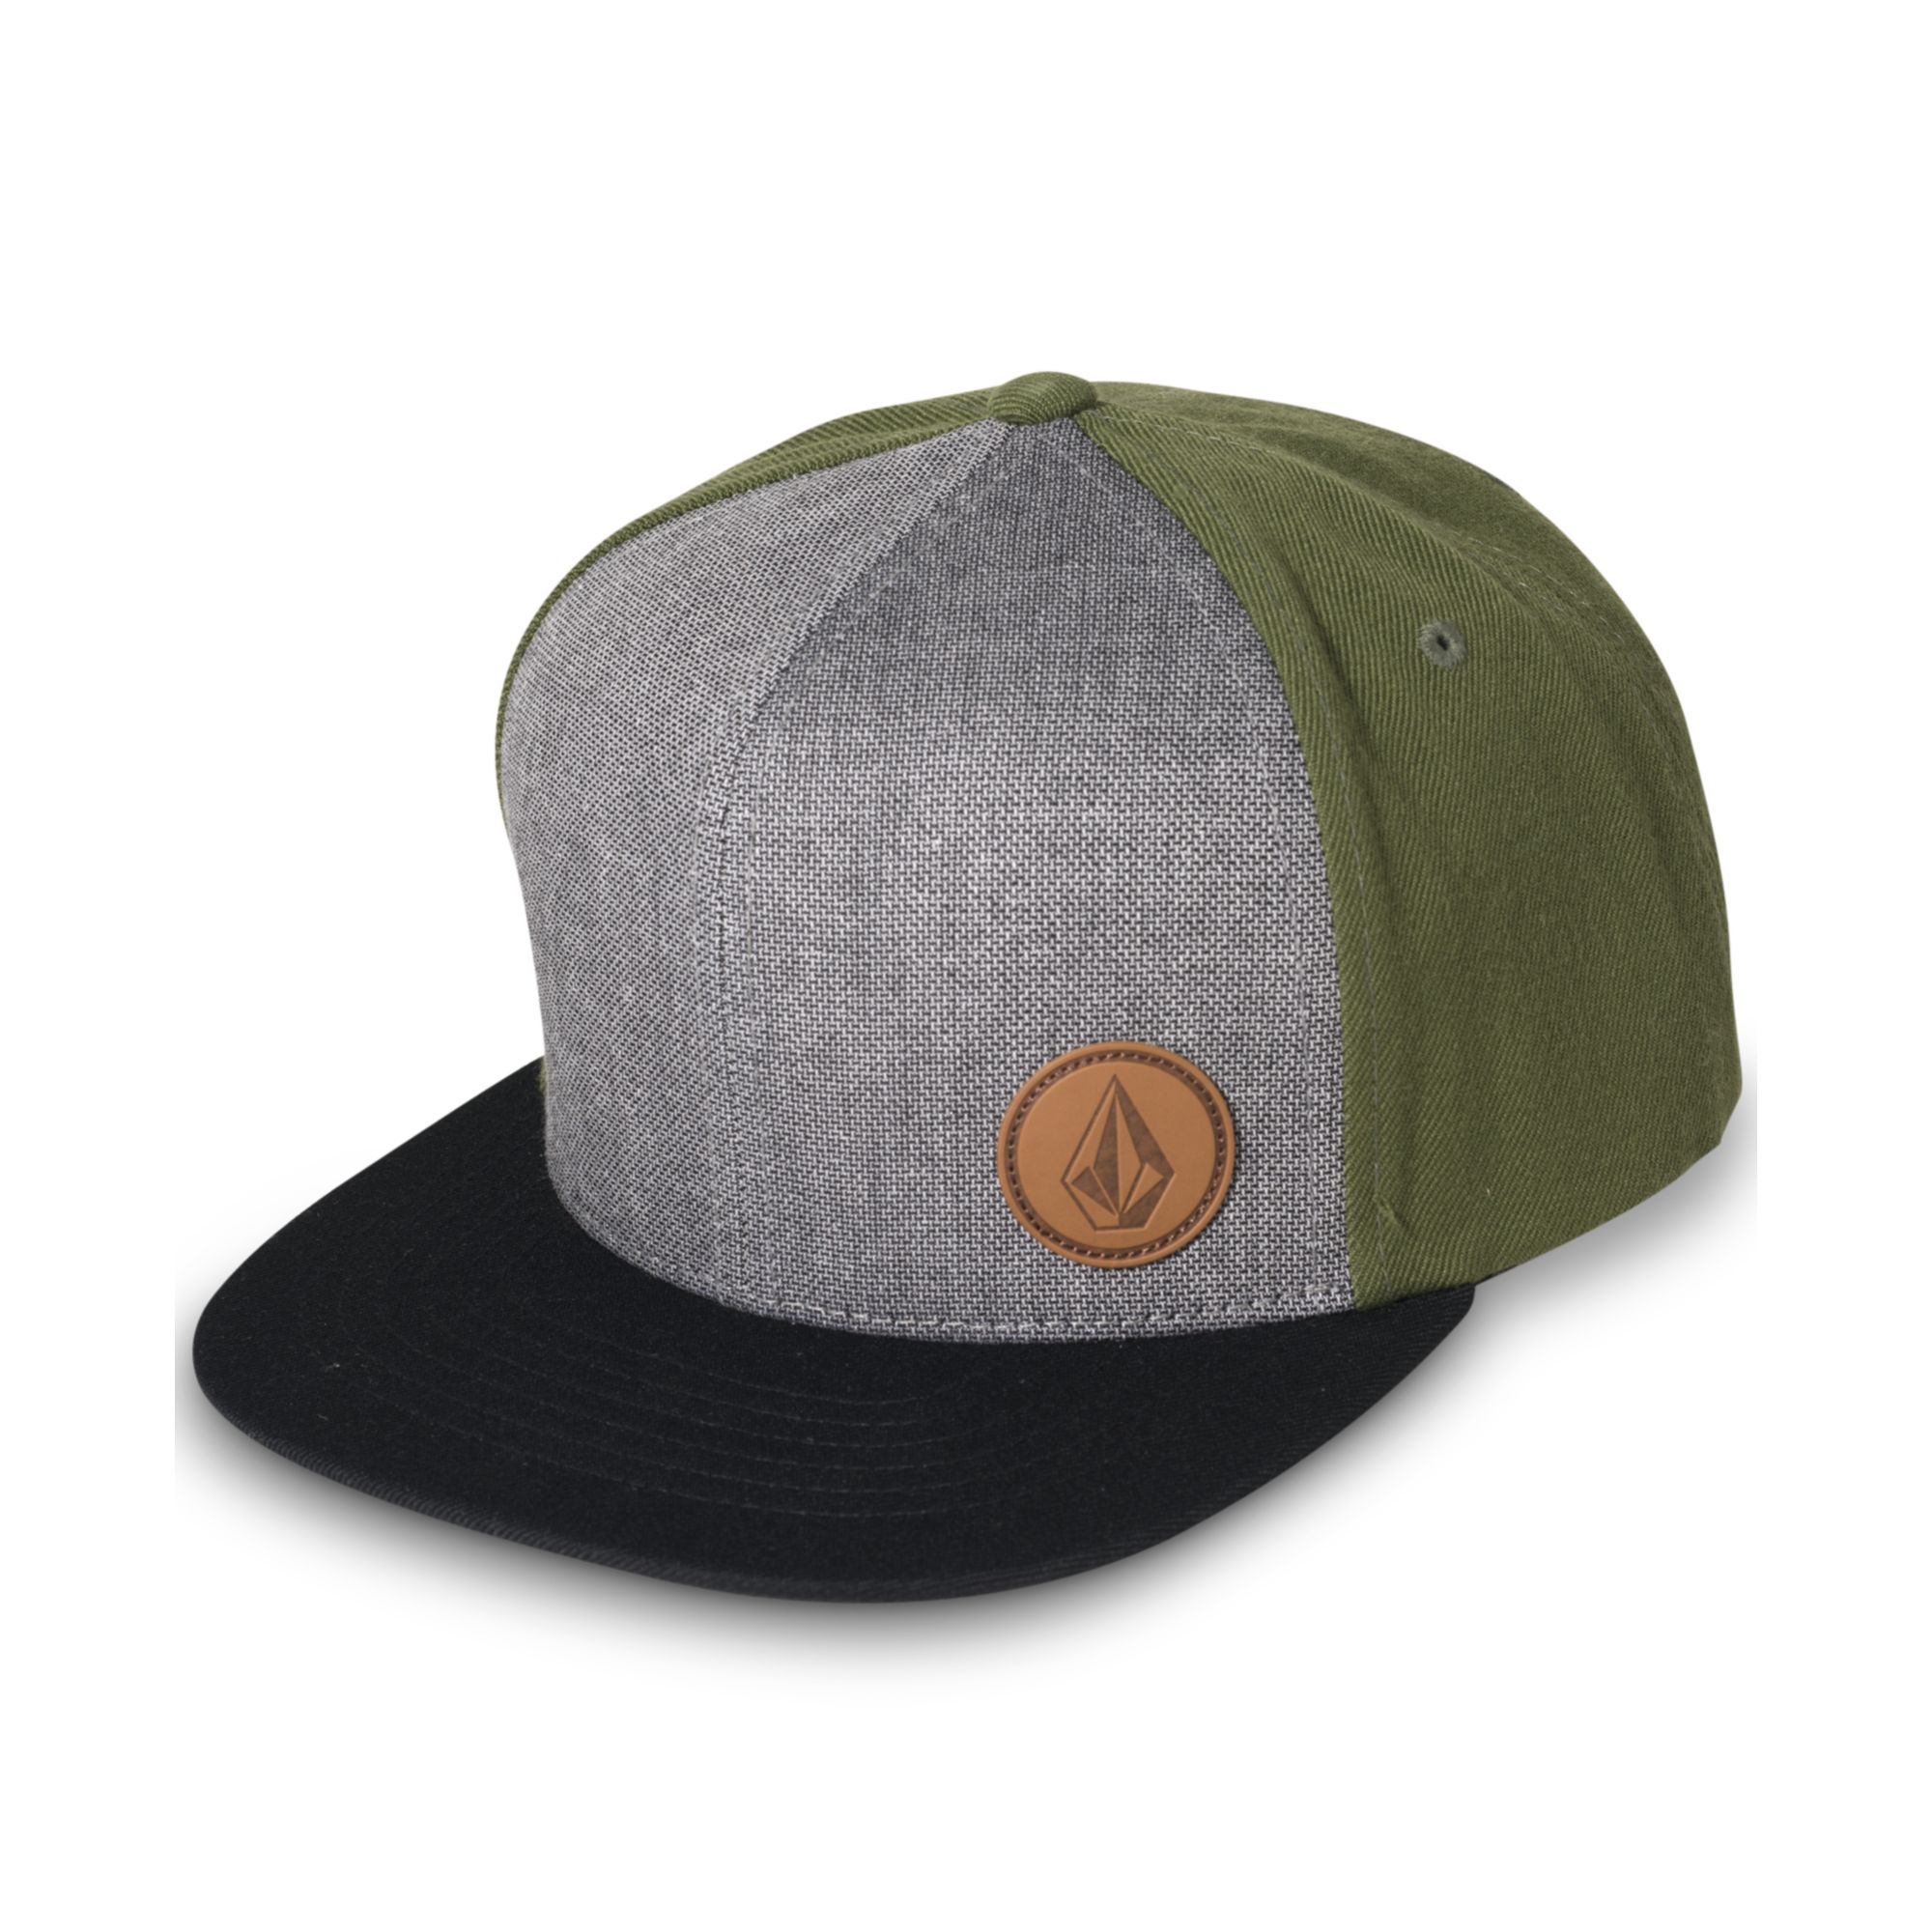 Lyst - Volcom Upper Corner Stone Snapback Hat in Green for Men 54ecf9641ed